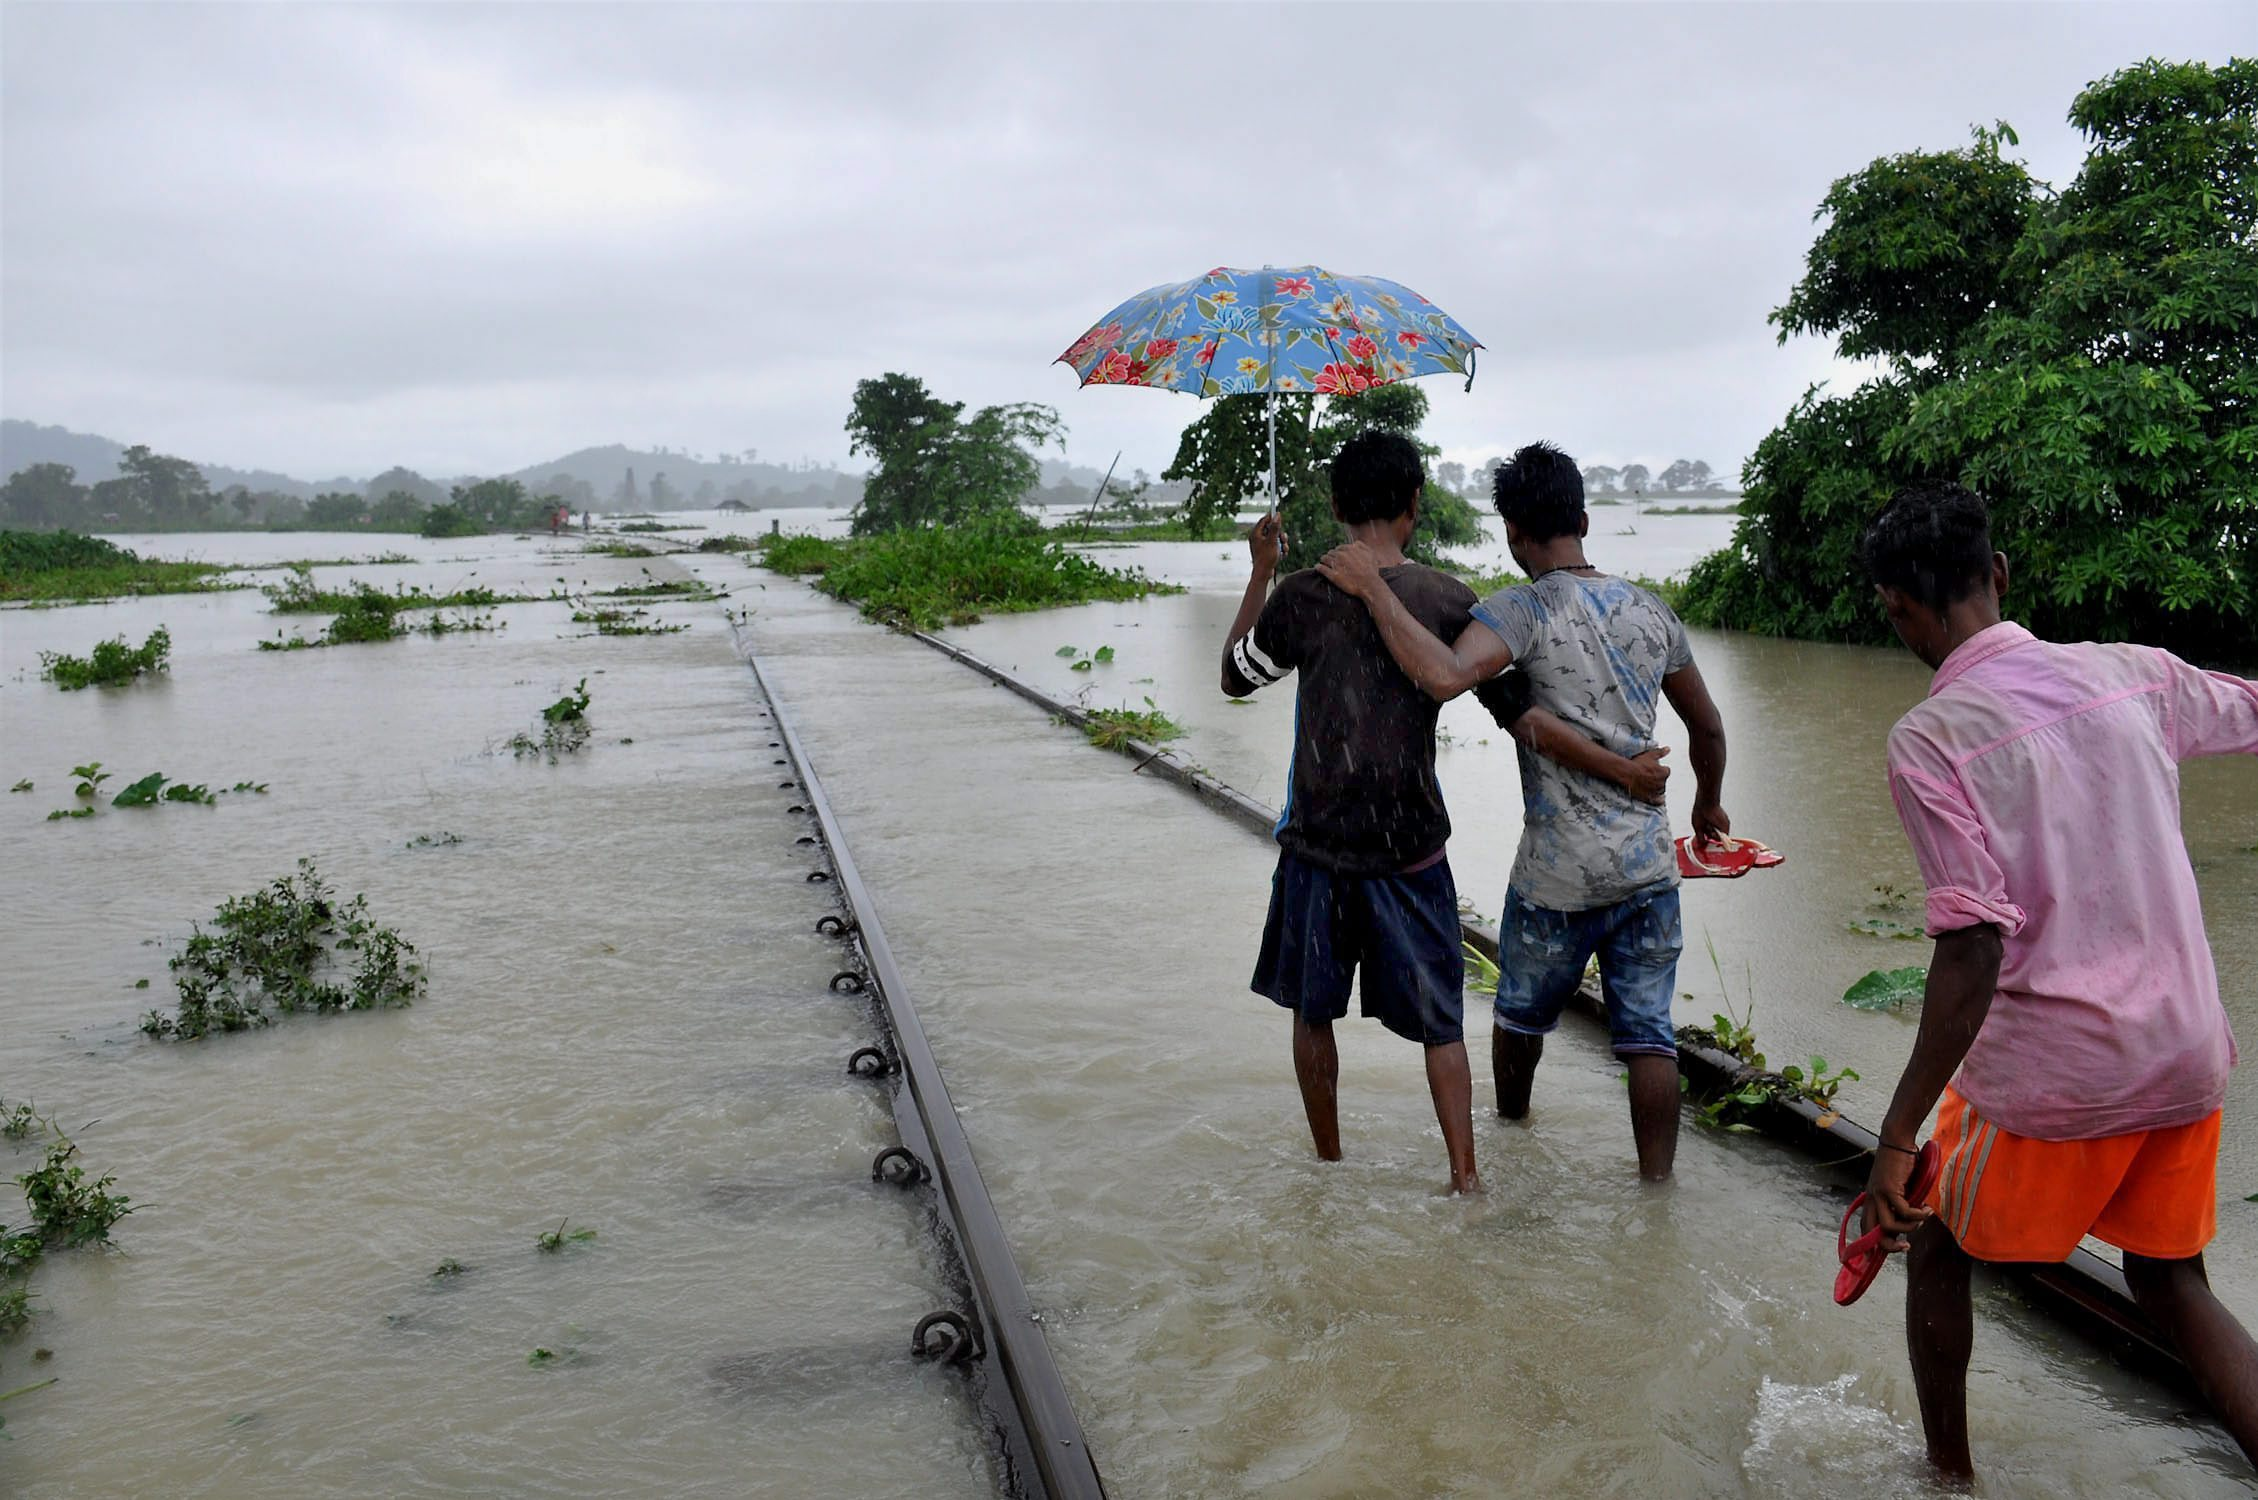 People walk in ankle-deep waters along a submerged railway track in Nagaon district in Assam. (Credit: PTI)